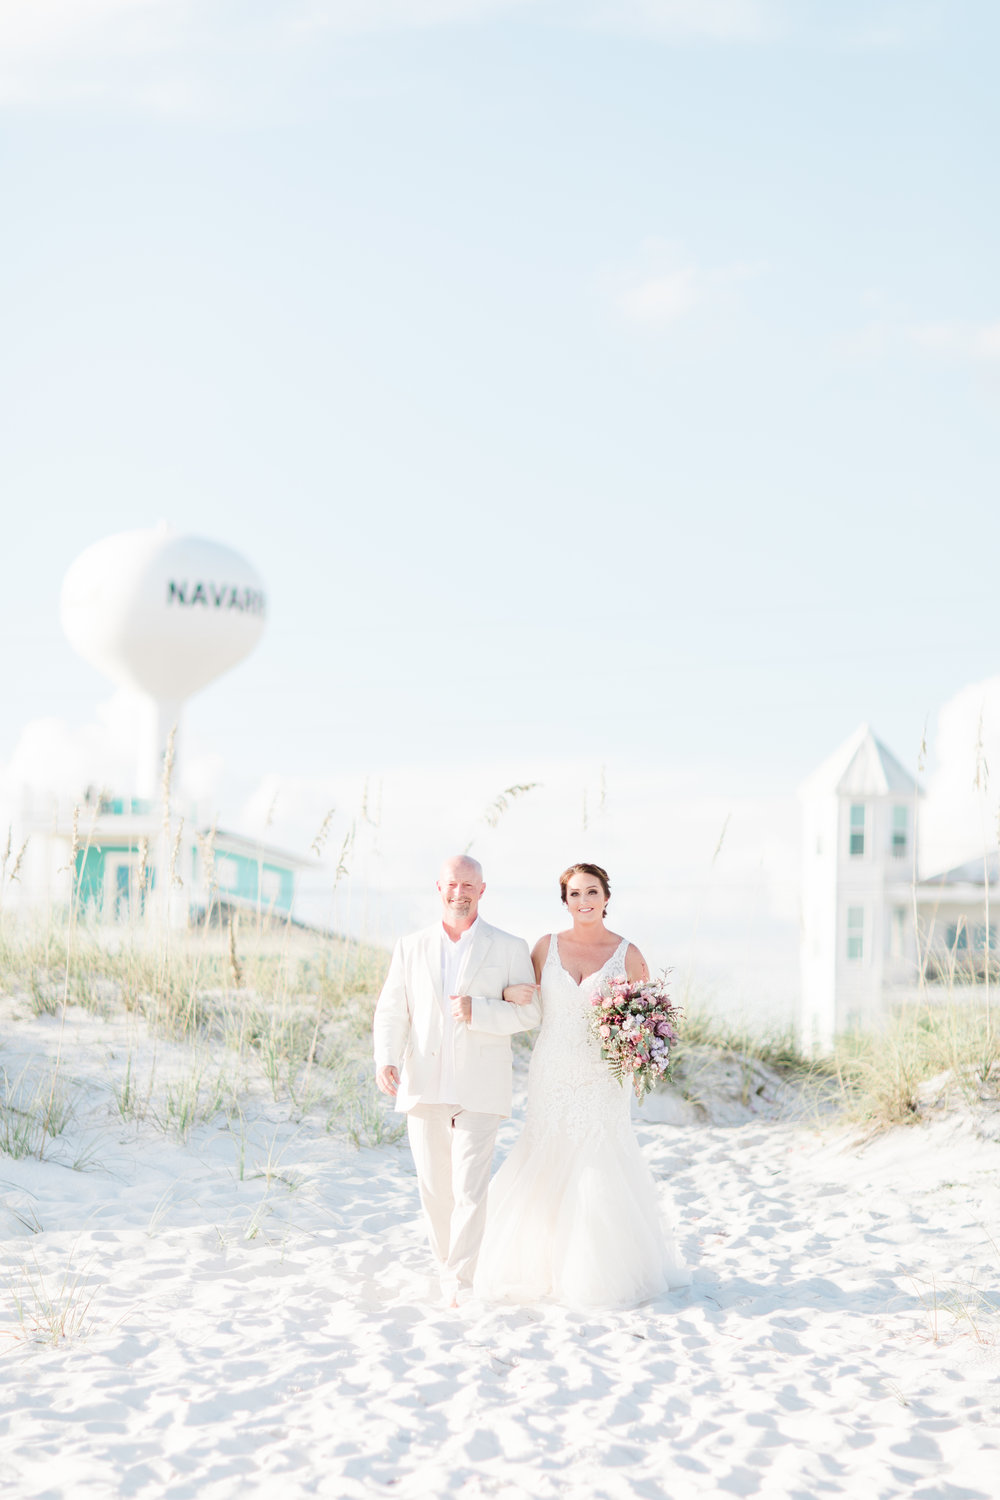 ALLYOGRAPHY_EdwardsWedding_Rental_NavarreFlorida-51.jpg